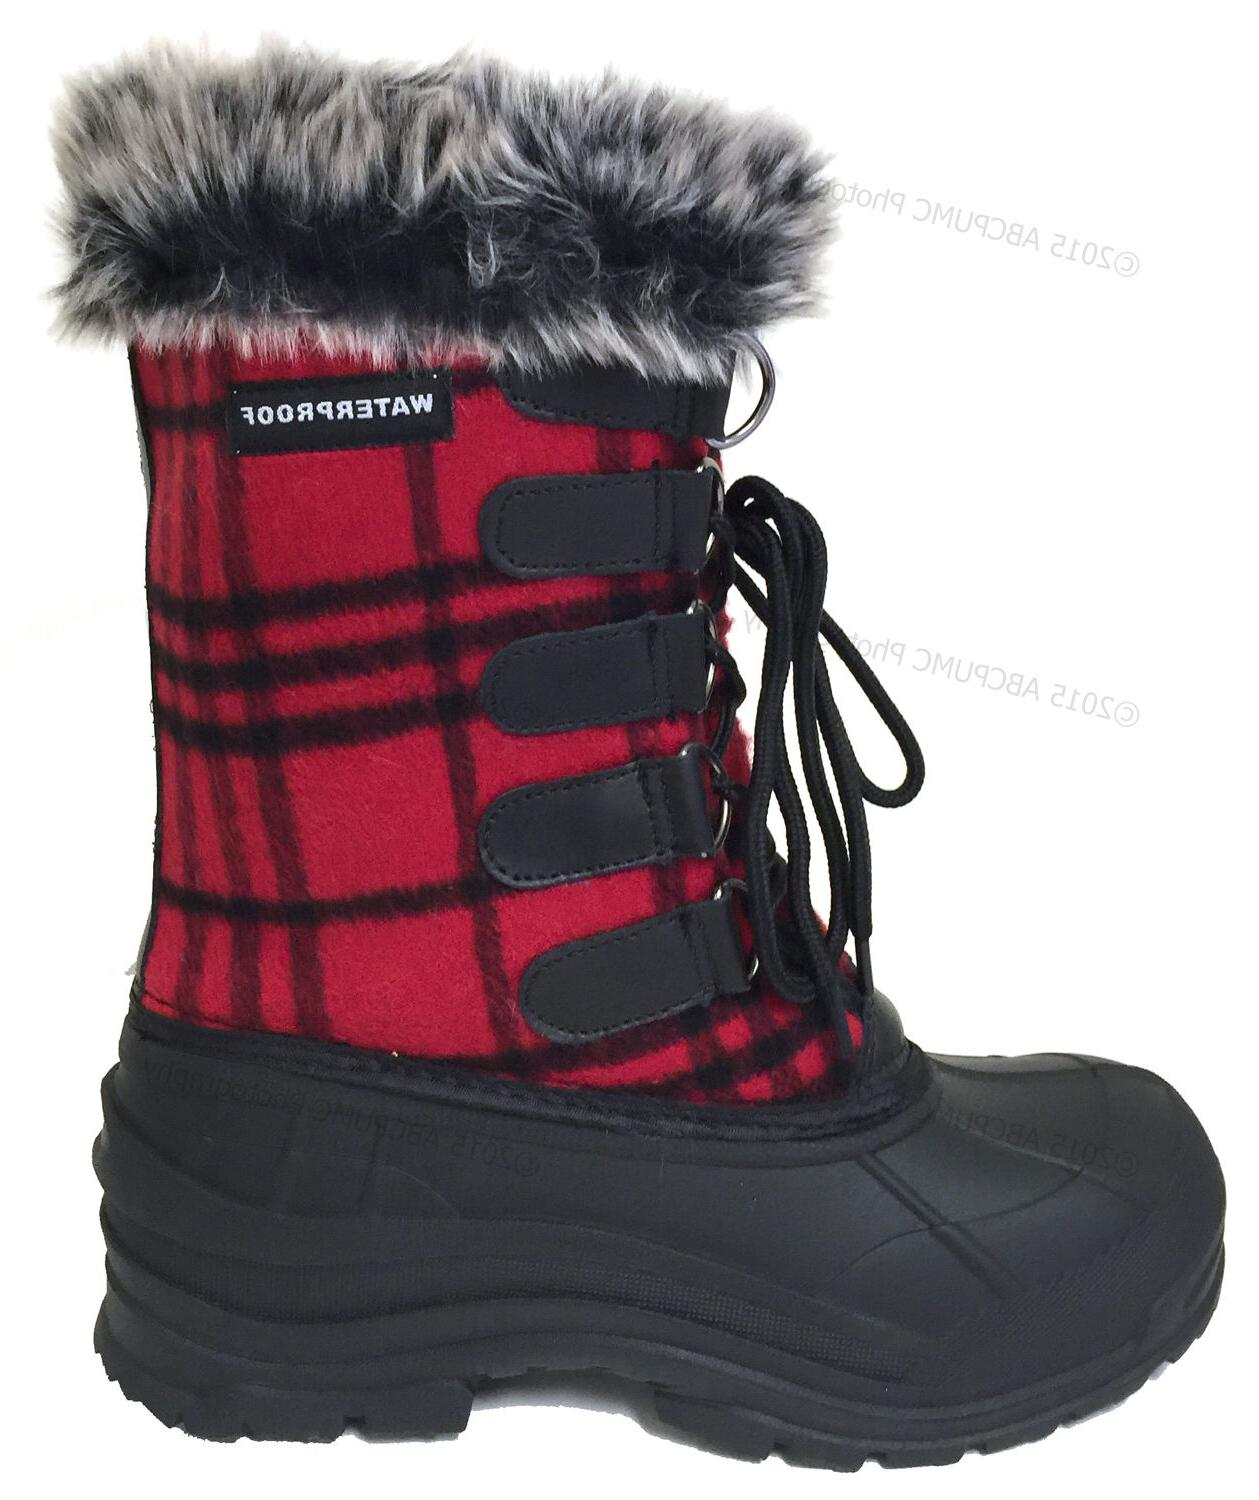 Womens Winter Plaid Fur Warm Insulated Waterproof